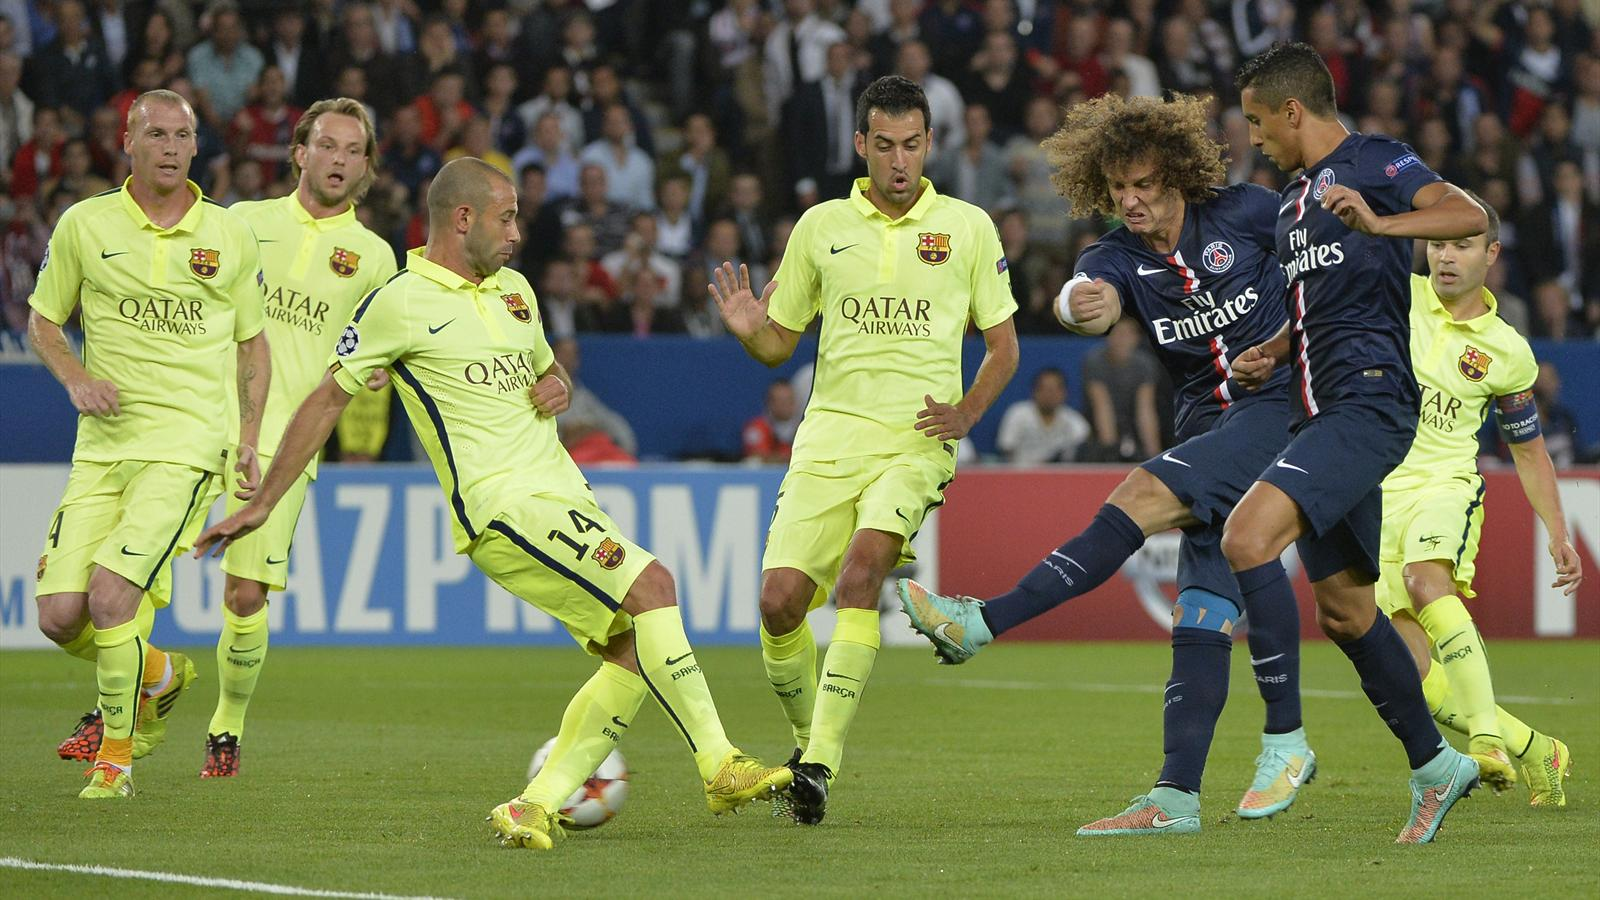 Match FC Barcelone - PSG en direct live streaming